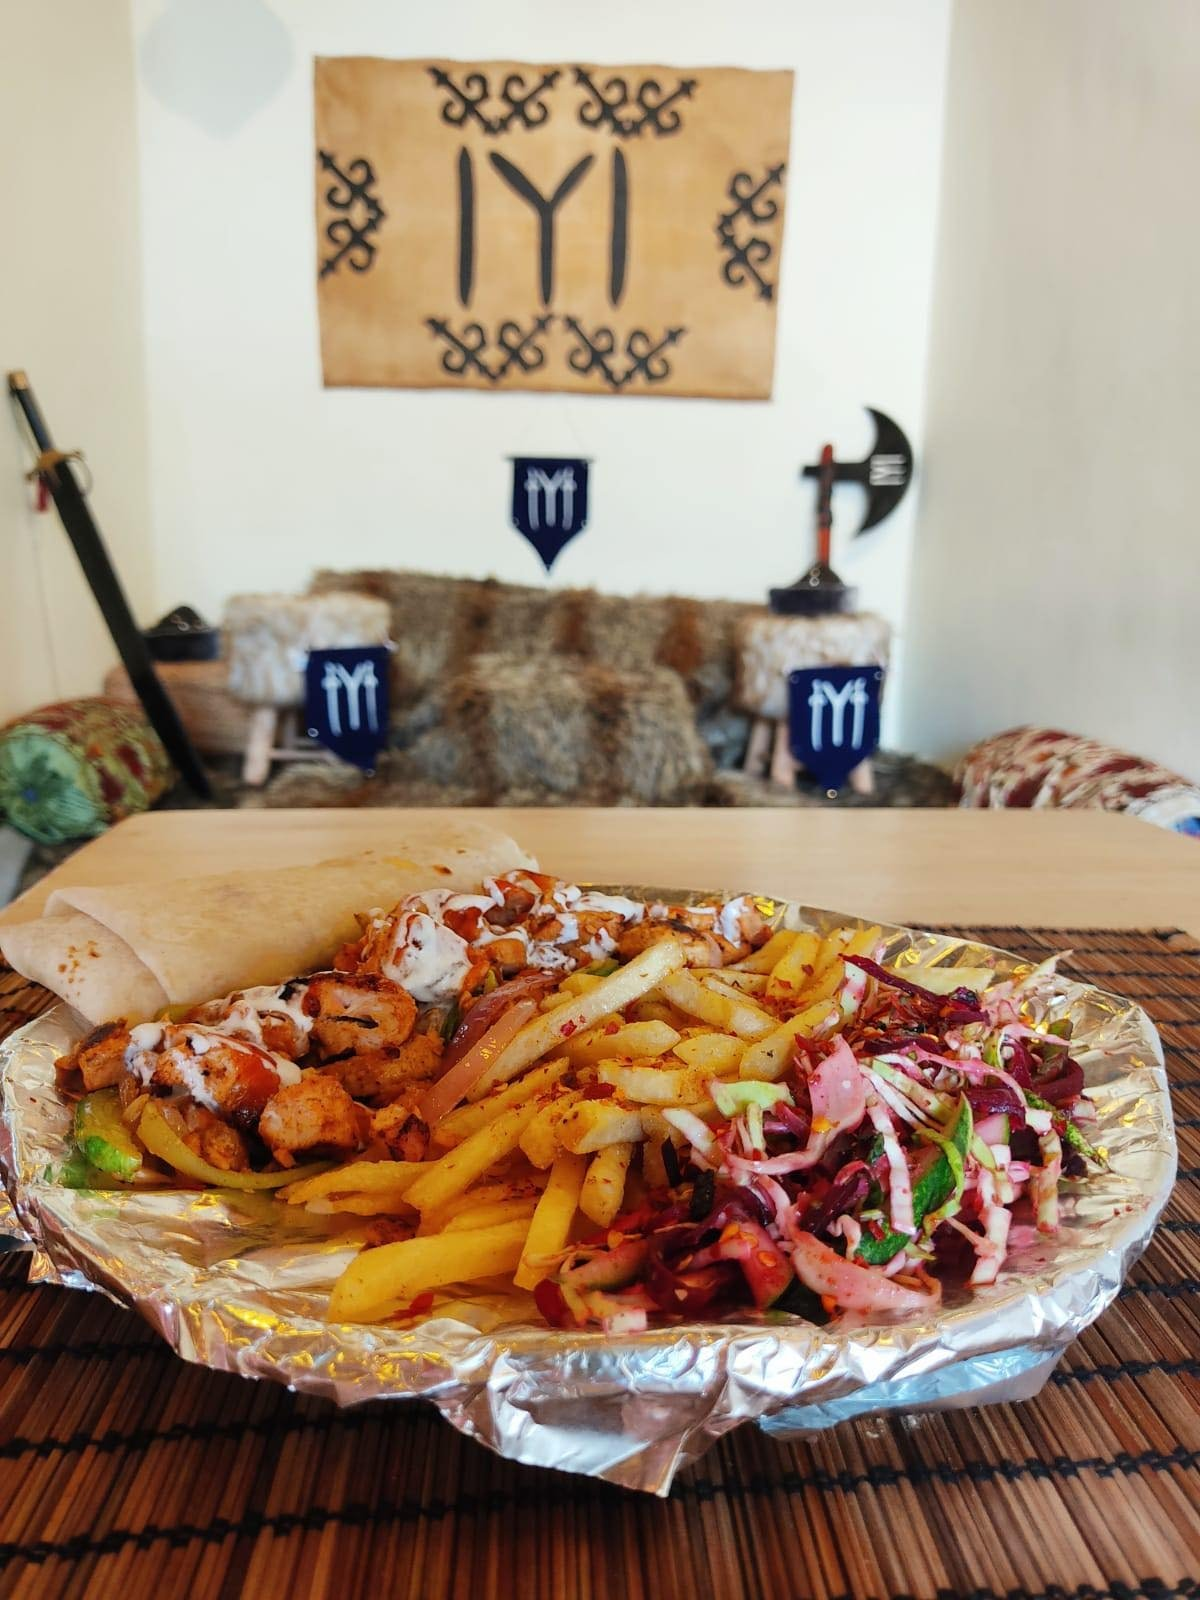 Chicken shish is served in Kardeşler - The Kashmir Café. (Photo Courtesy of Shadab Chashoo)